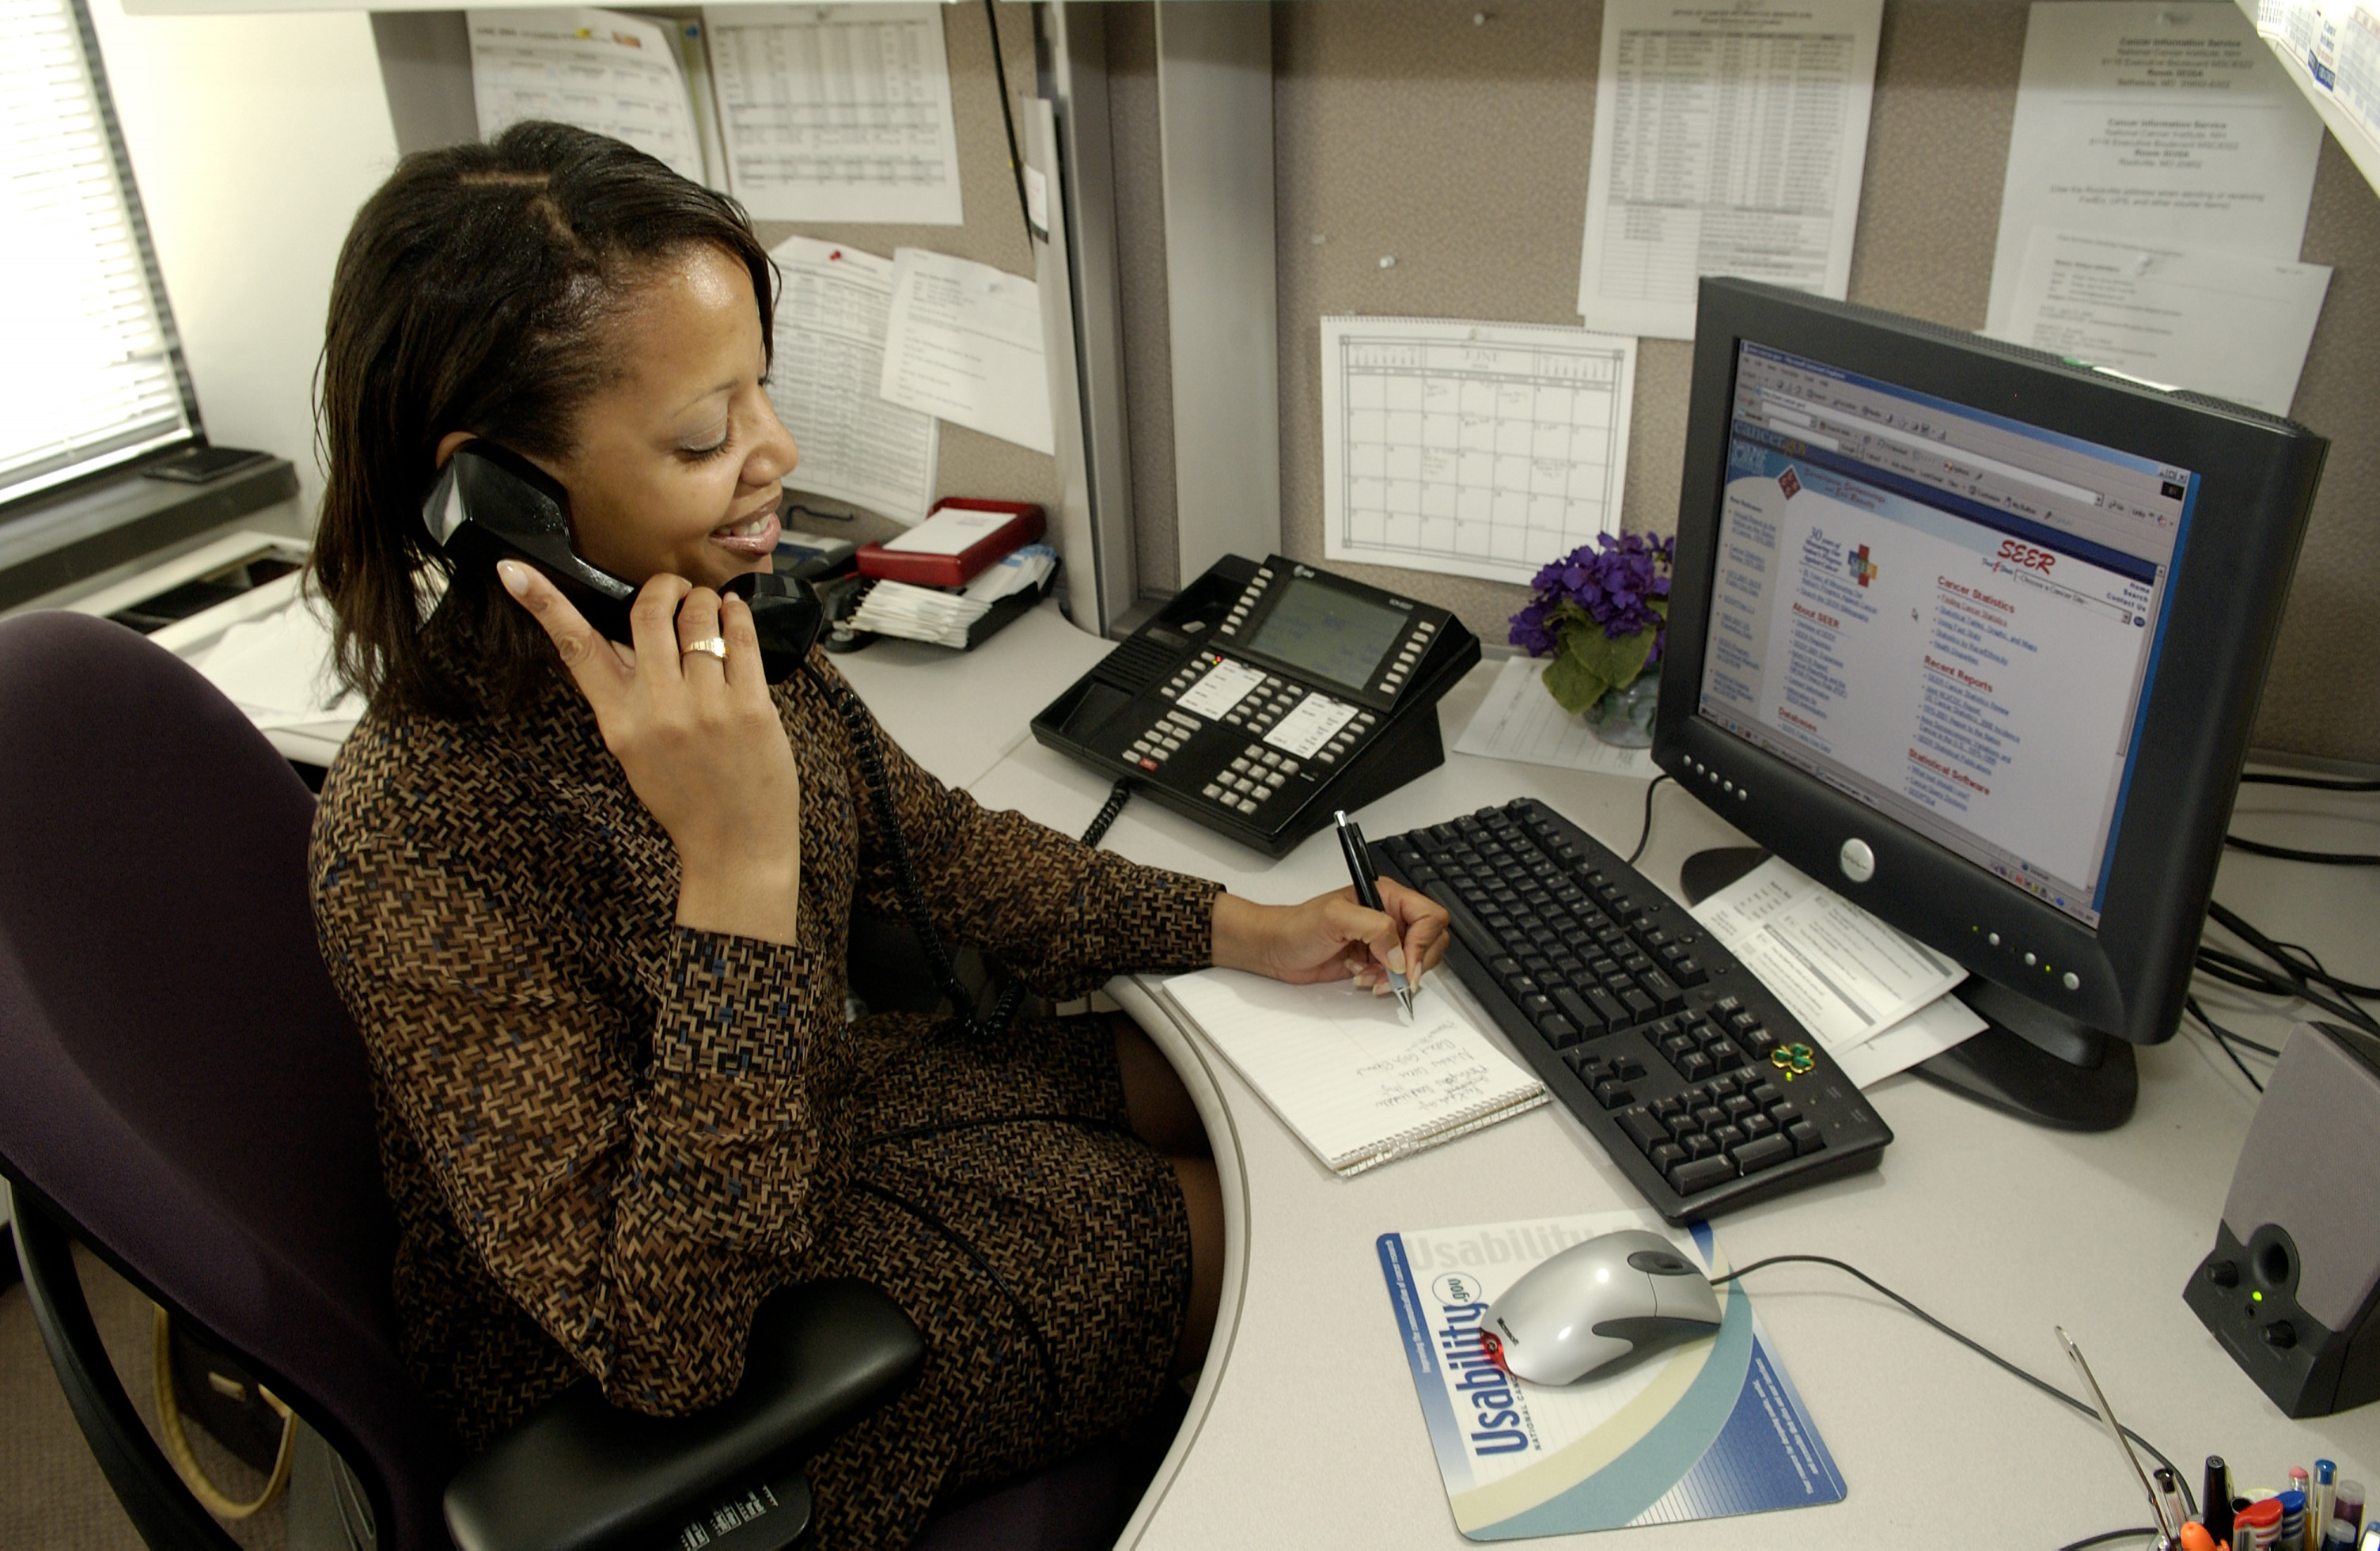 Health Professional Answers Phone